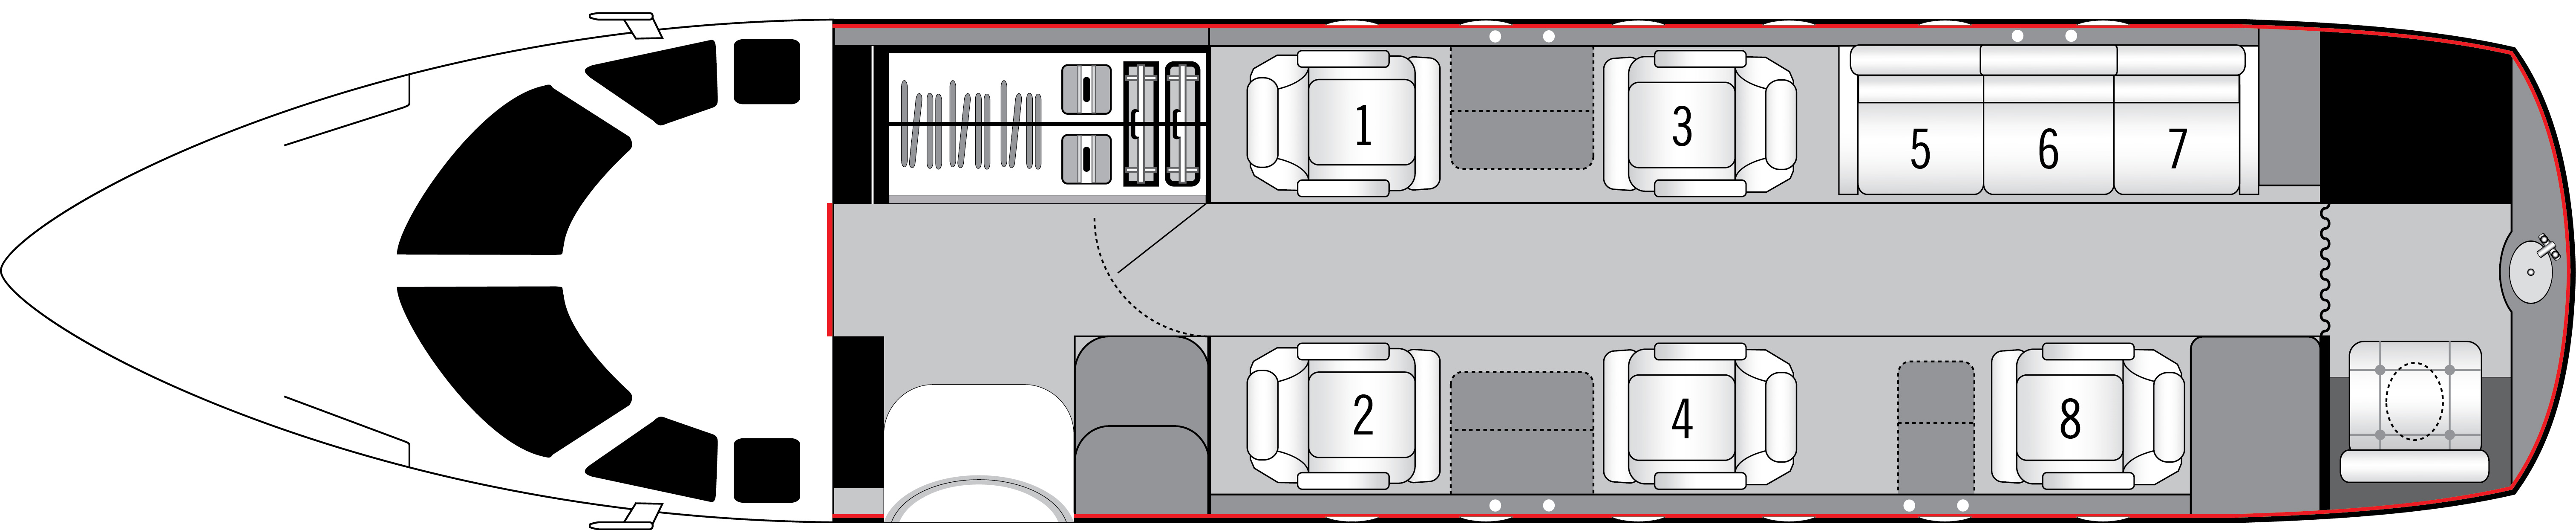 Floor plan of Hawker 800 A